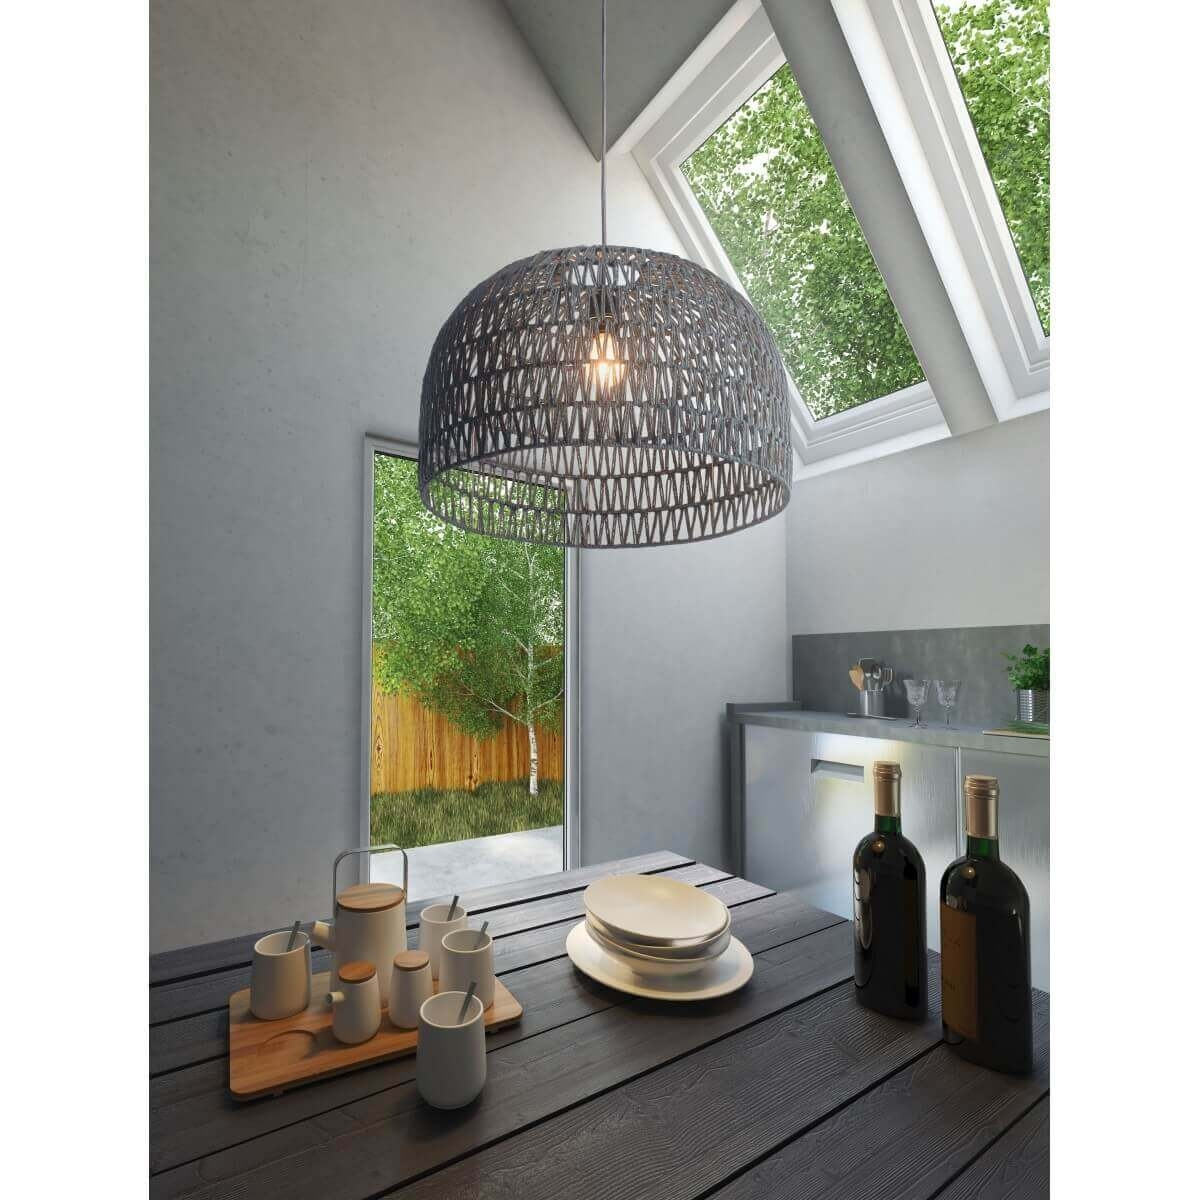 Modern kitchen lighting environmental view